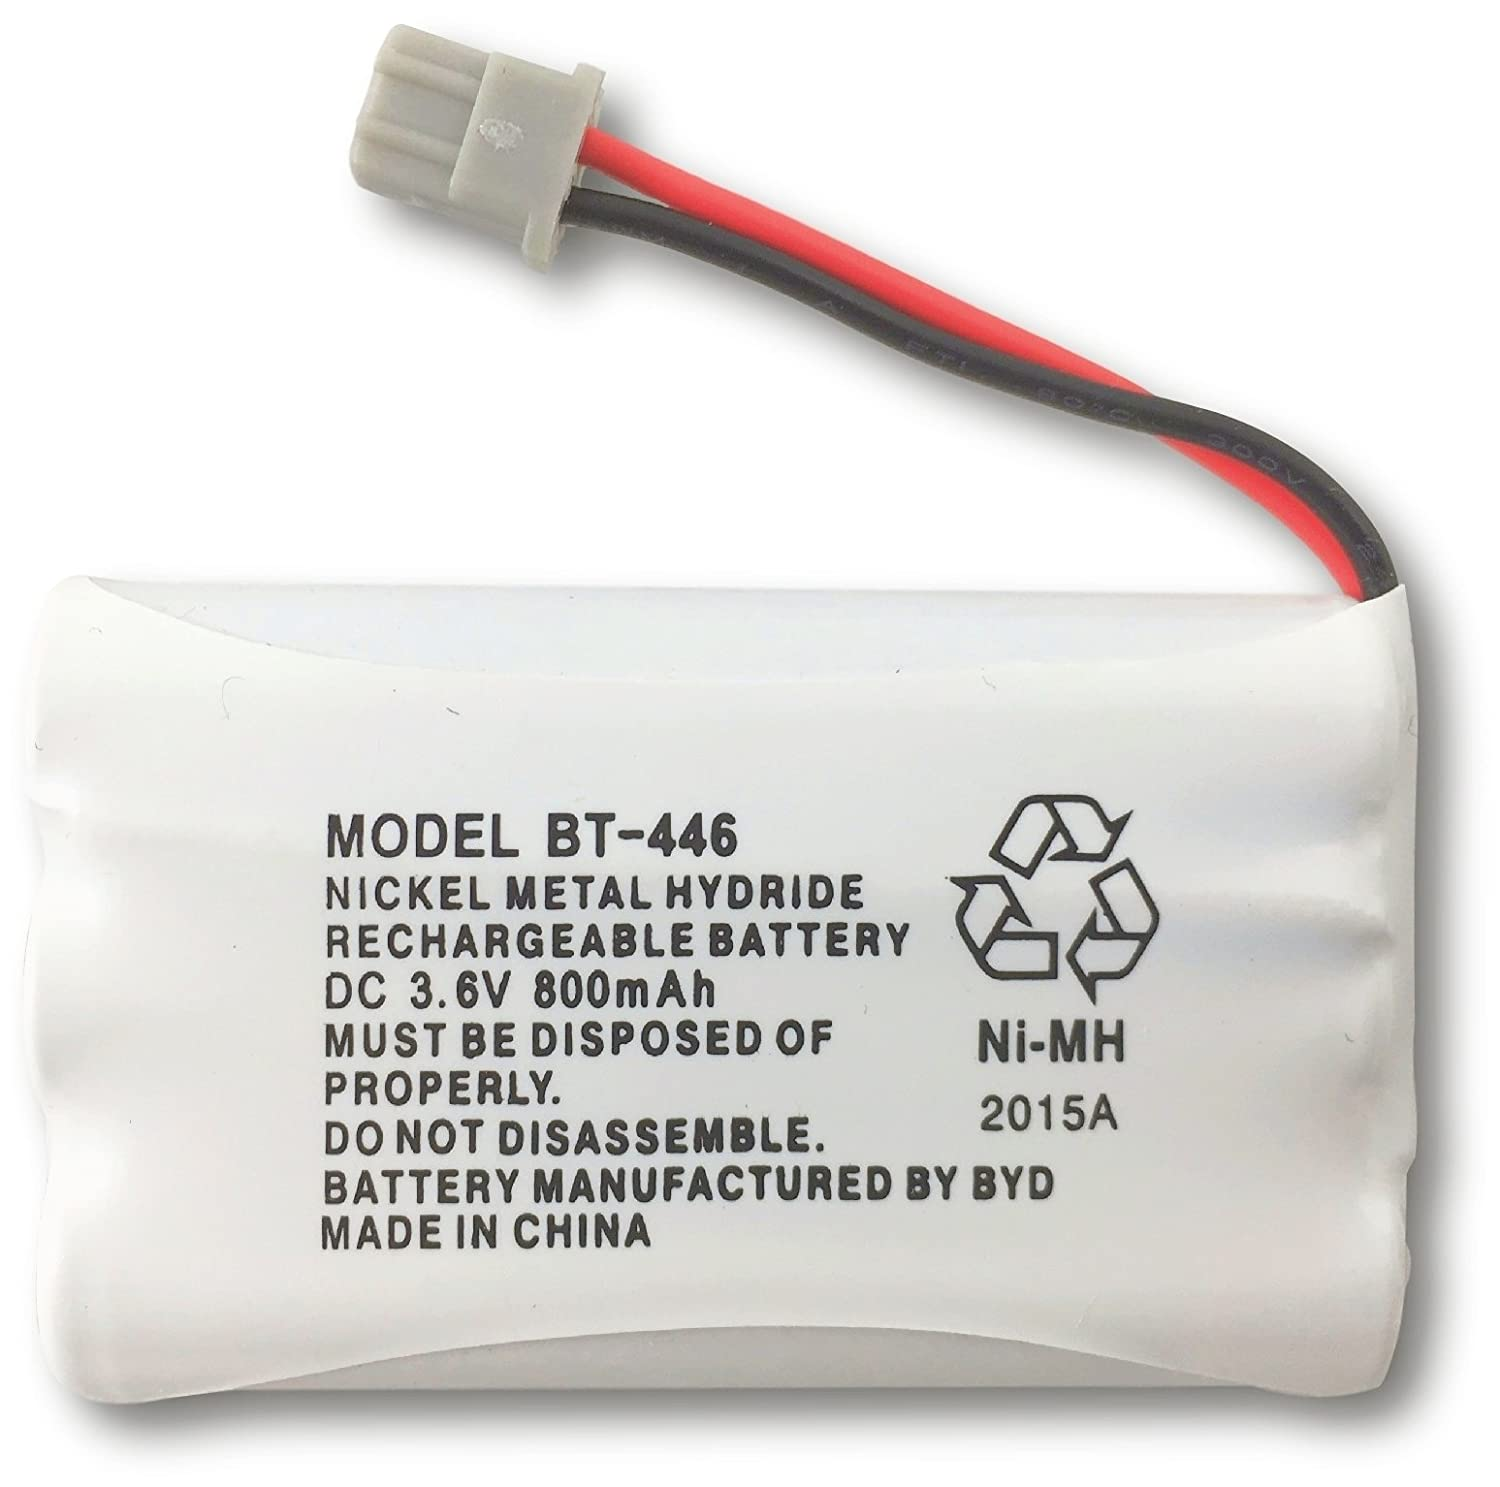 Uniden BT-446 Nickel Metal Hydride Rechargeable Cordless Phone Battery, DC 3.6V 800mAh, Genuine Uniden BT - 446